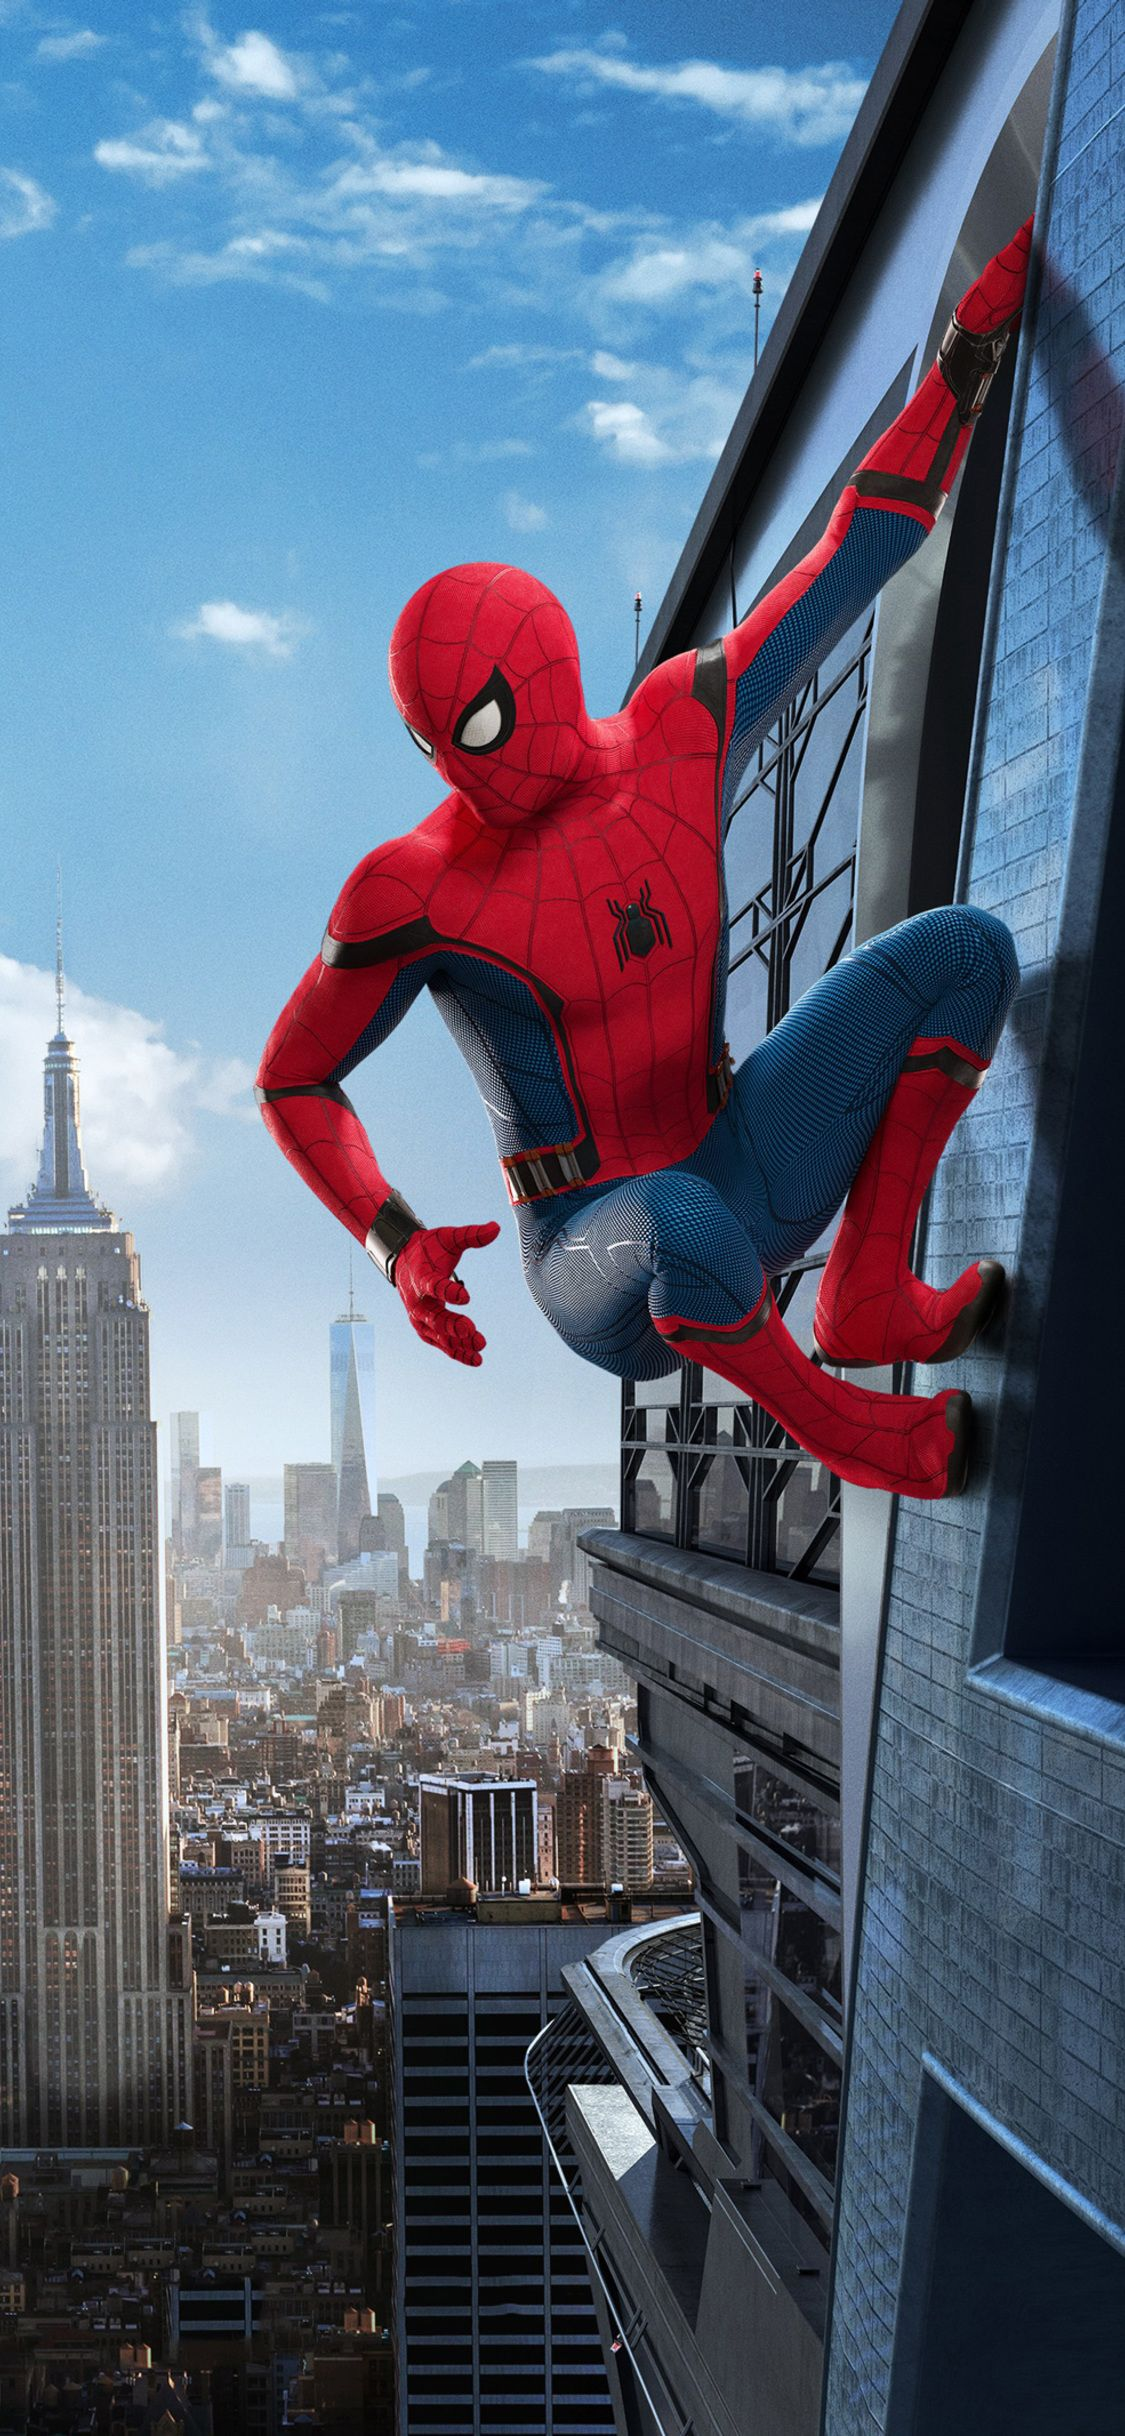 1125x2436 Spiderman Homecoming Iphone Xs Iphone 10 Iphone X Hd 4k Wallpapers Images Backgrounds Photos Marvel Comics Wallpaper Spiderman Pictures Spiderman